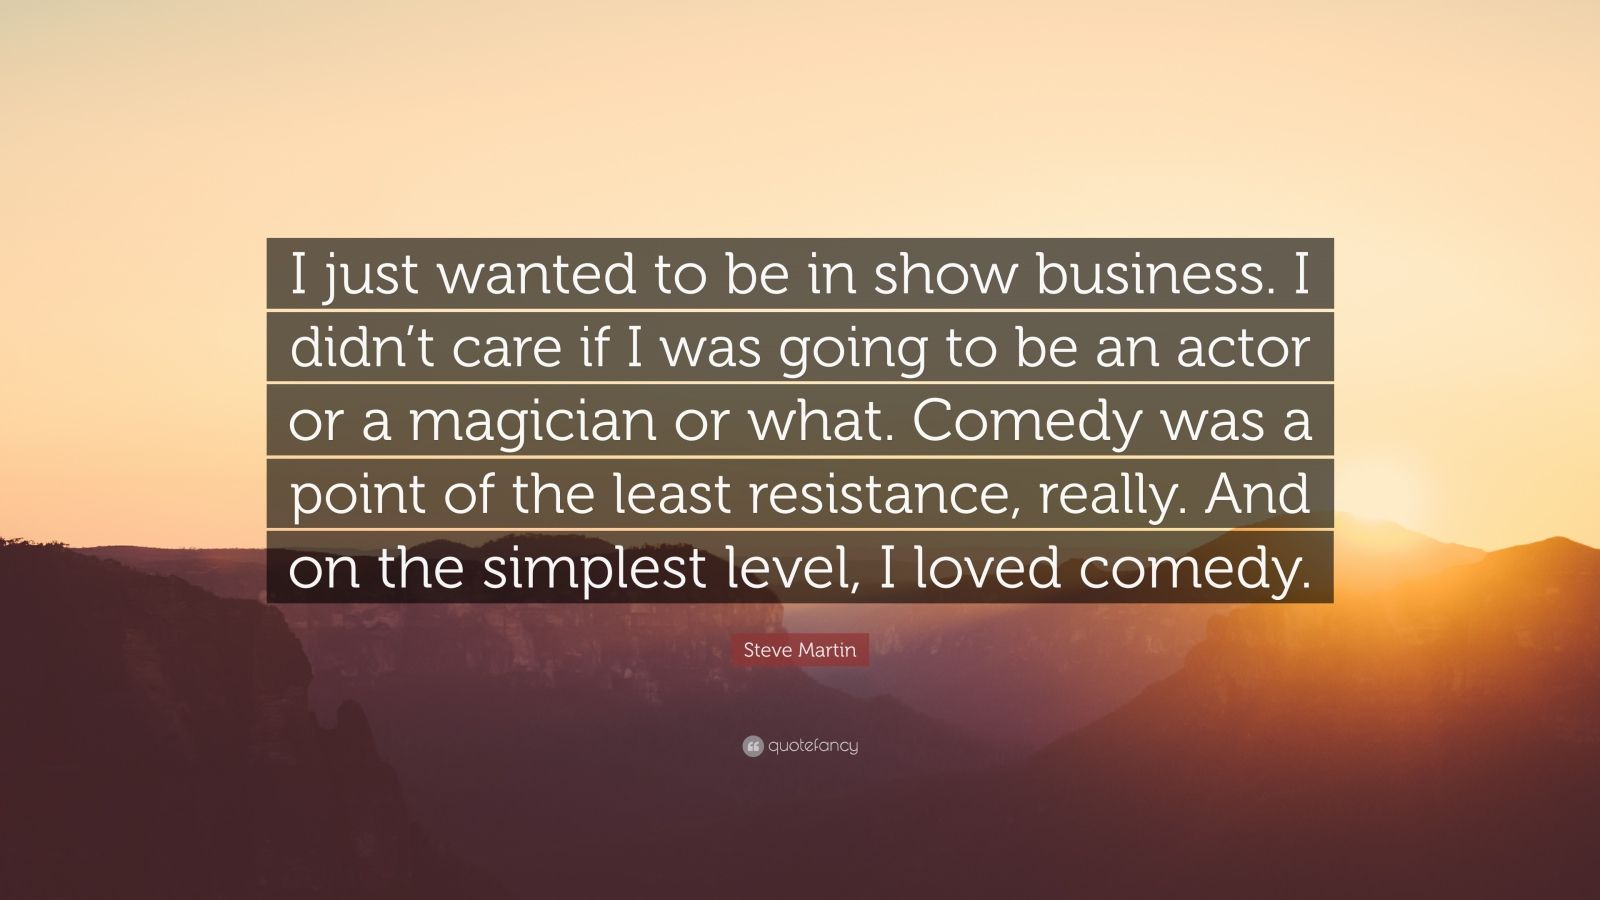 """Steve Martin Quote: """"I just wanted to be in show business. I didn't care if I was going to be an actor or a magician or what. Comedy was a point of the least resistance, really. And on the simplest level, I loved comedy."""""""